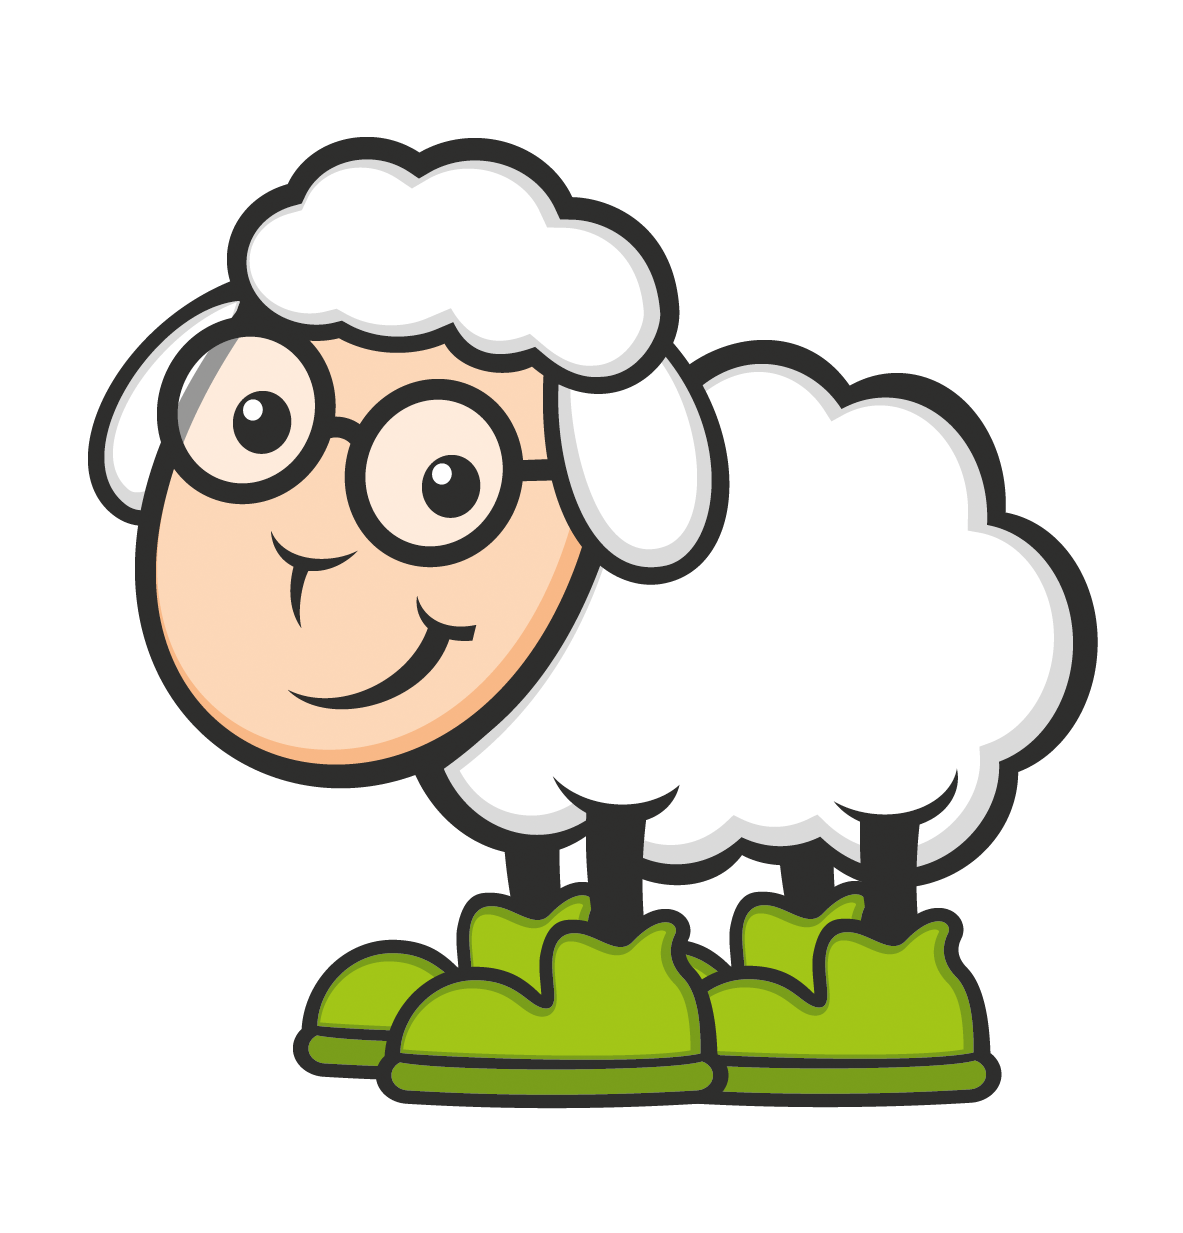 Png Format Images Of Sheep image #23179